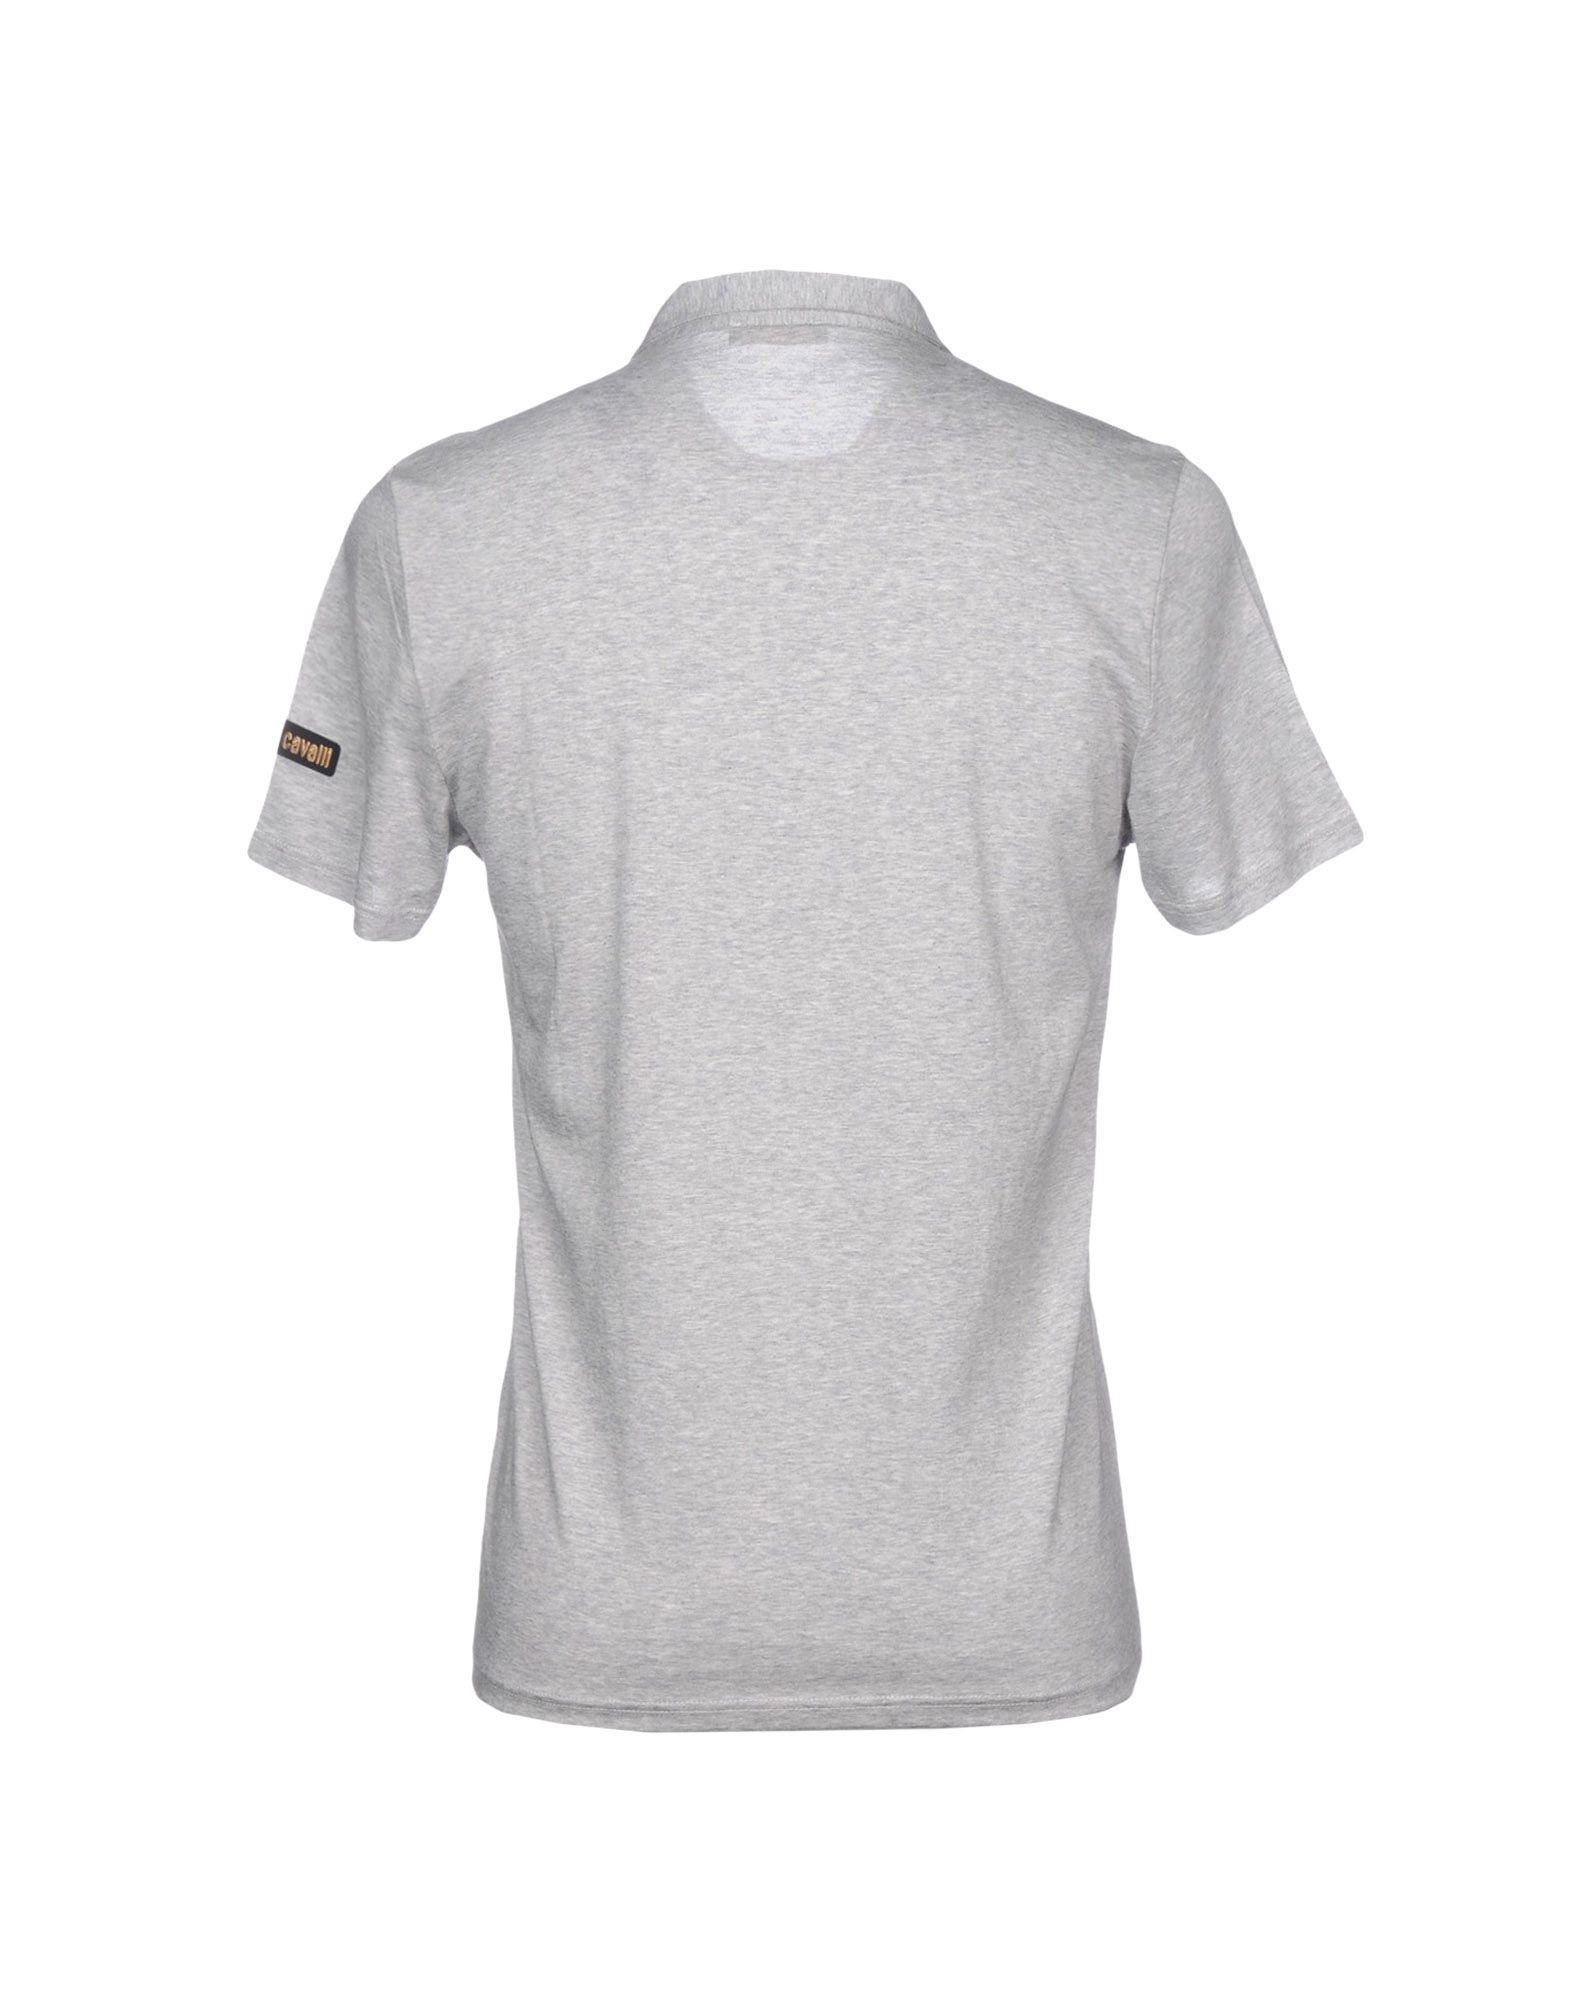 5f4f5642 Roberto Cavalli Polo Shirt in Gray for Men - Lyst